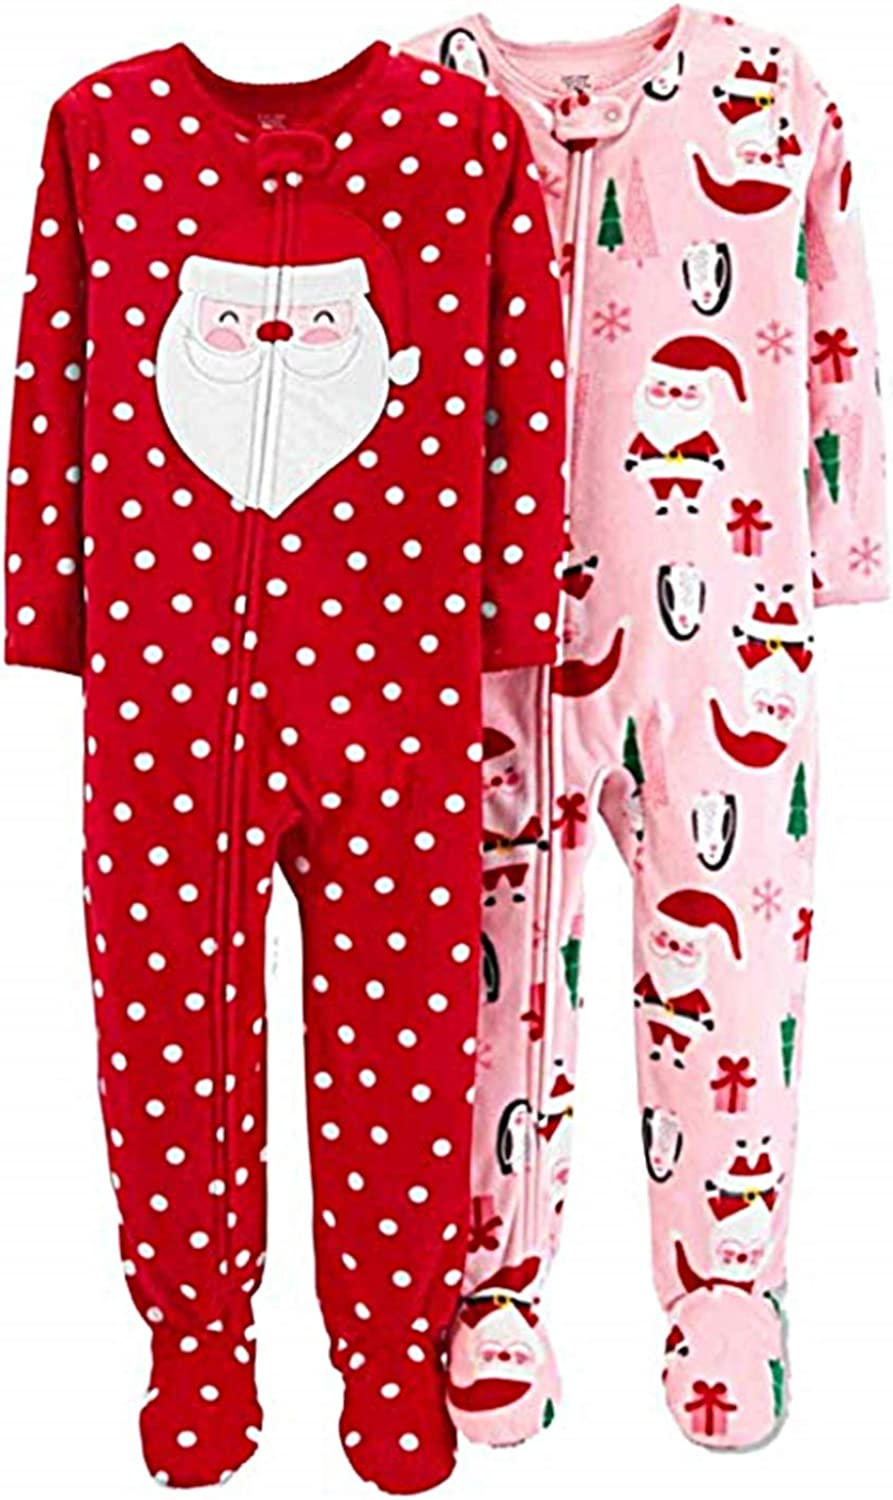 Carters Infant Girls 2 PC Fleece Santa Claus Christmas Sleeper Pajamas Size 4T Red